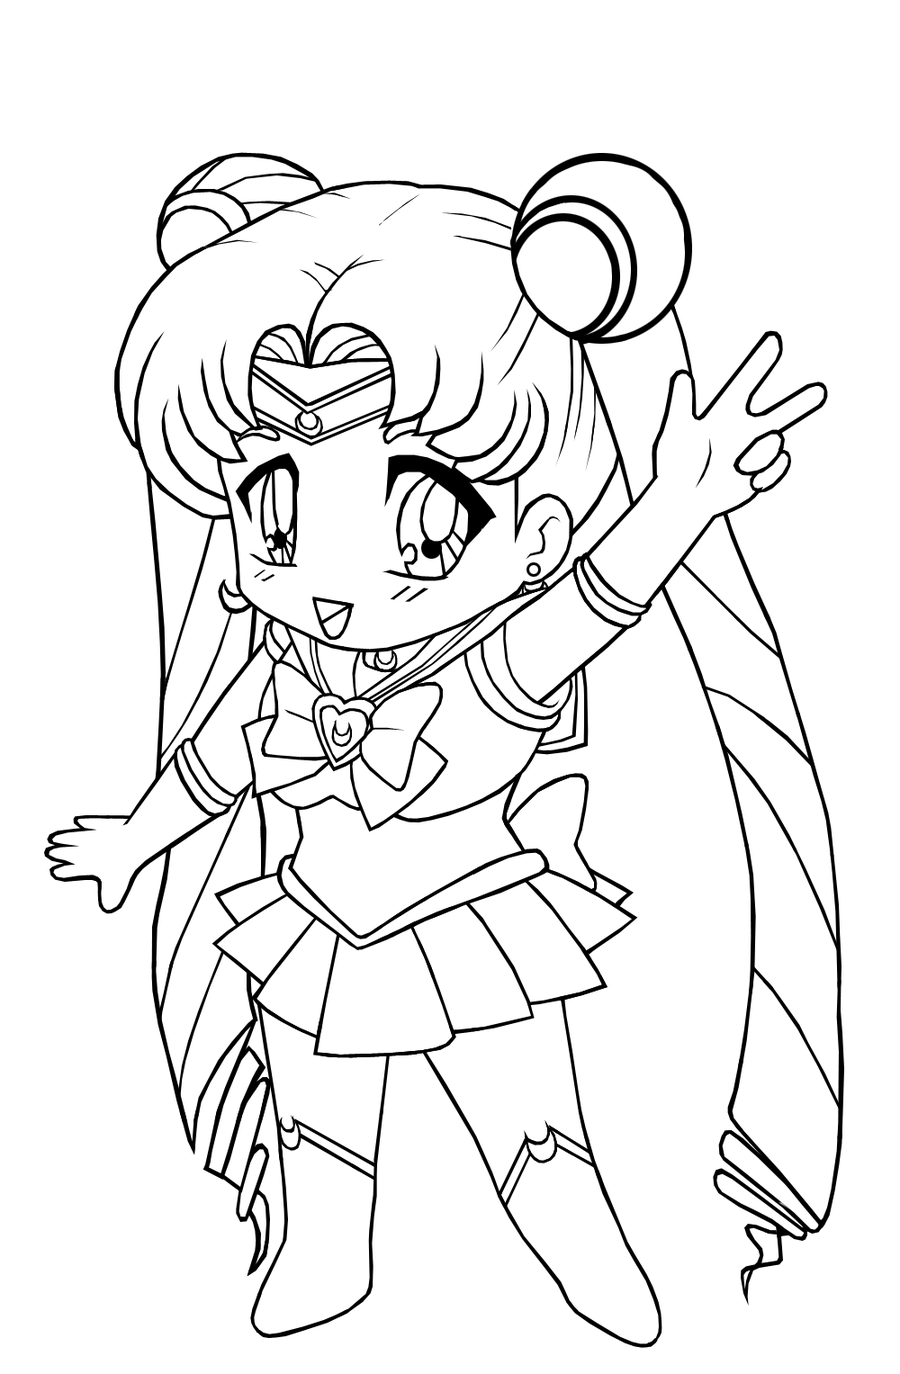 coloring pages of anime cute coloring pages best coloring pages for kids anime coloring pages of